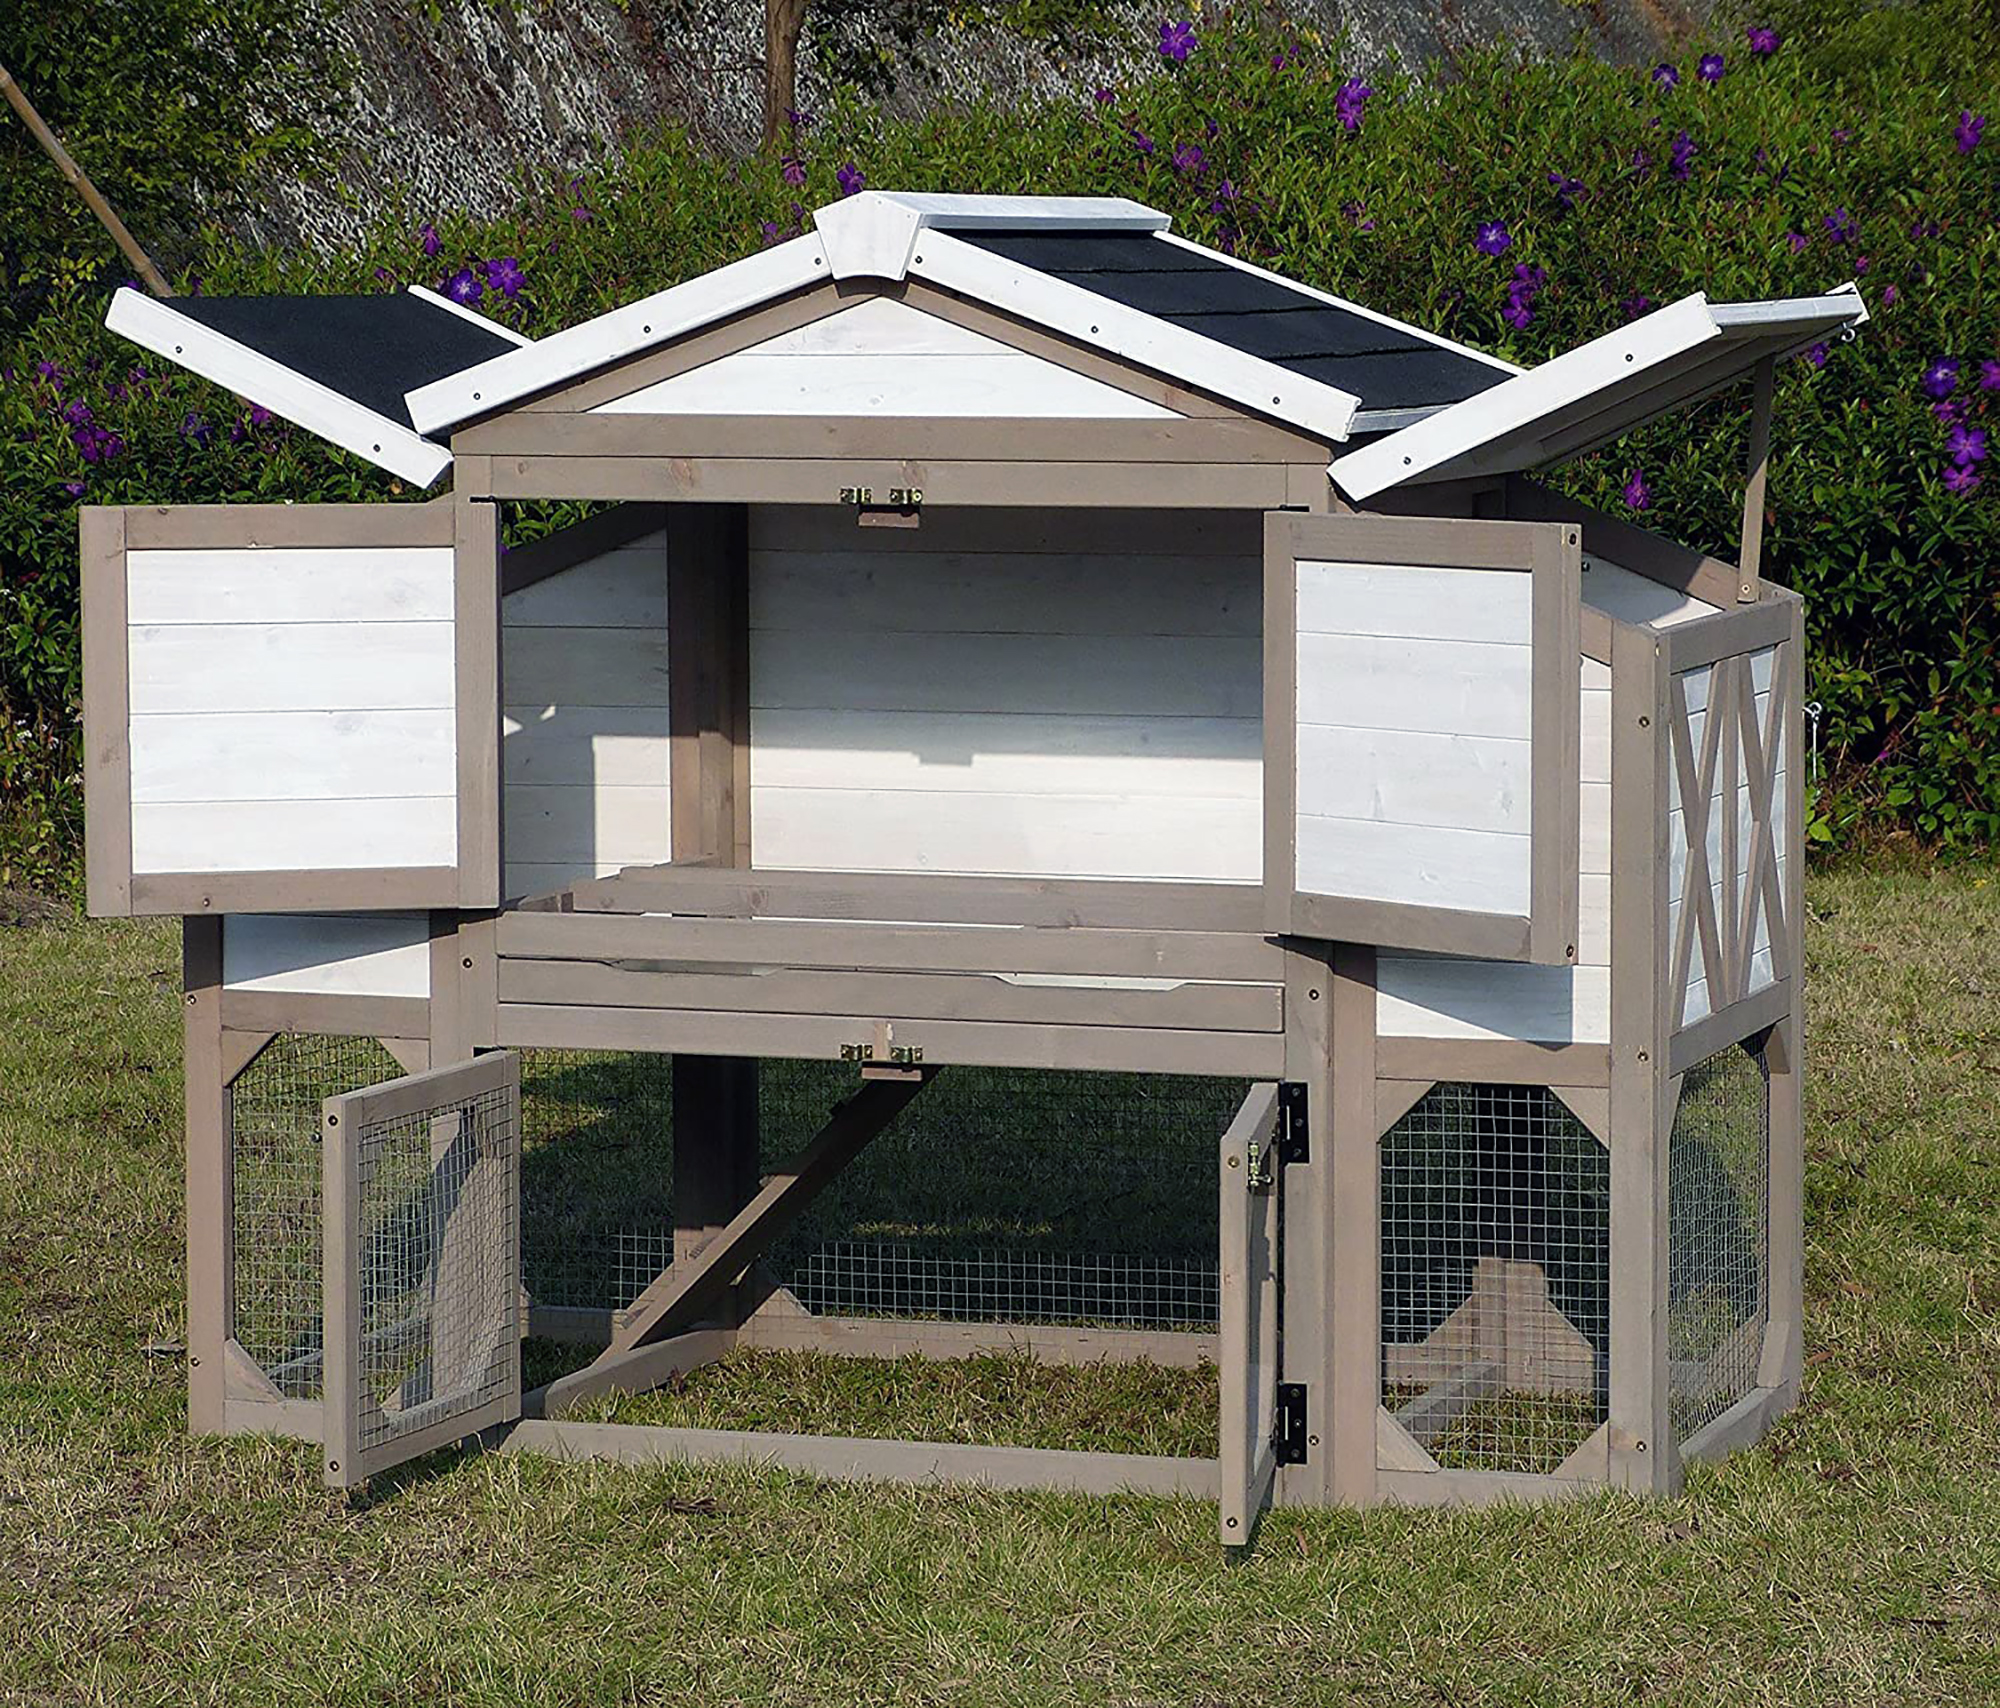 SMALL chicken Coop DESIGN